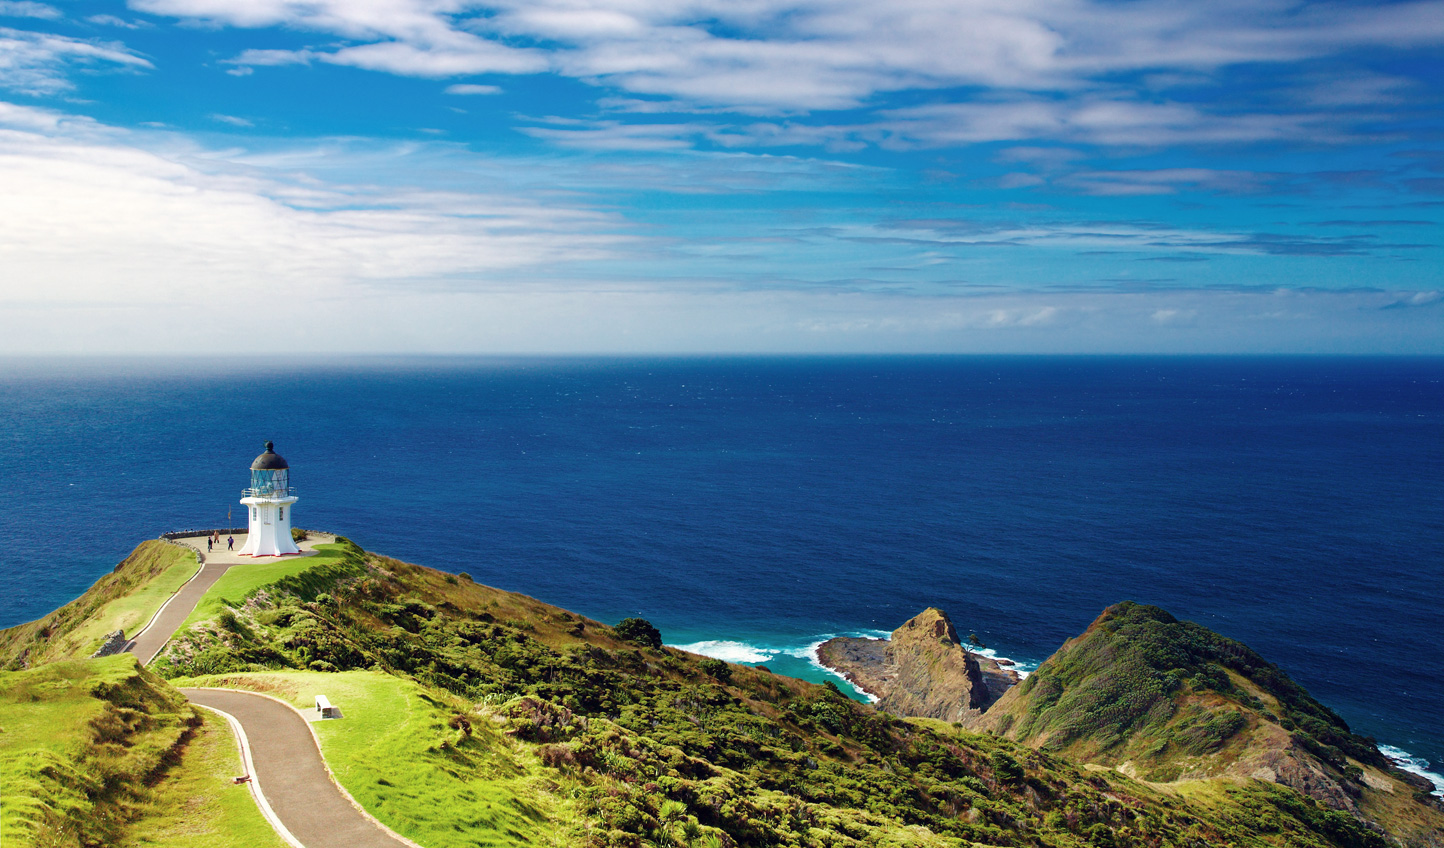 Head out on a hike up to Cape Reinga at the very tip of the North Island